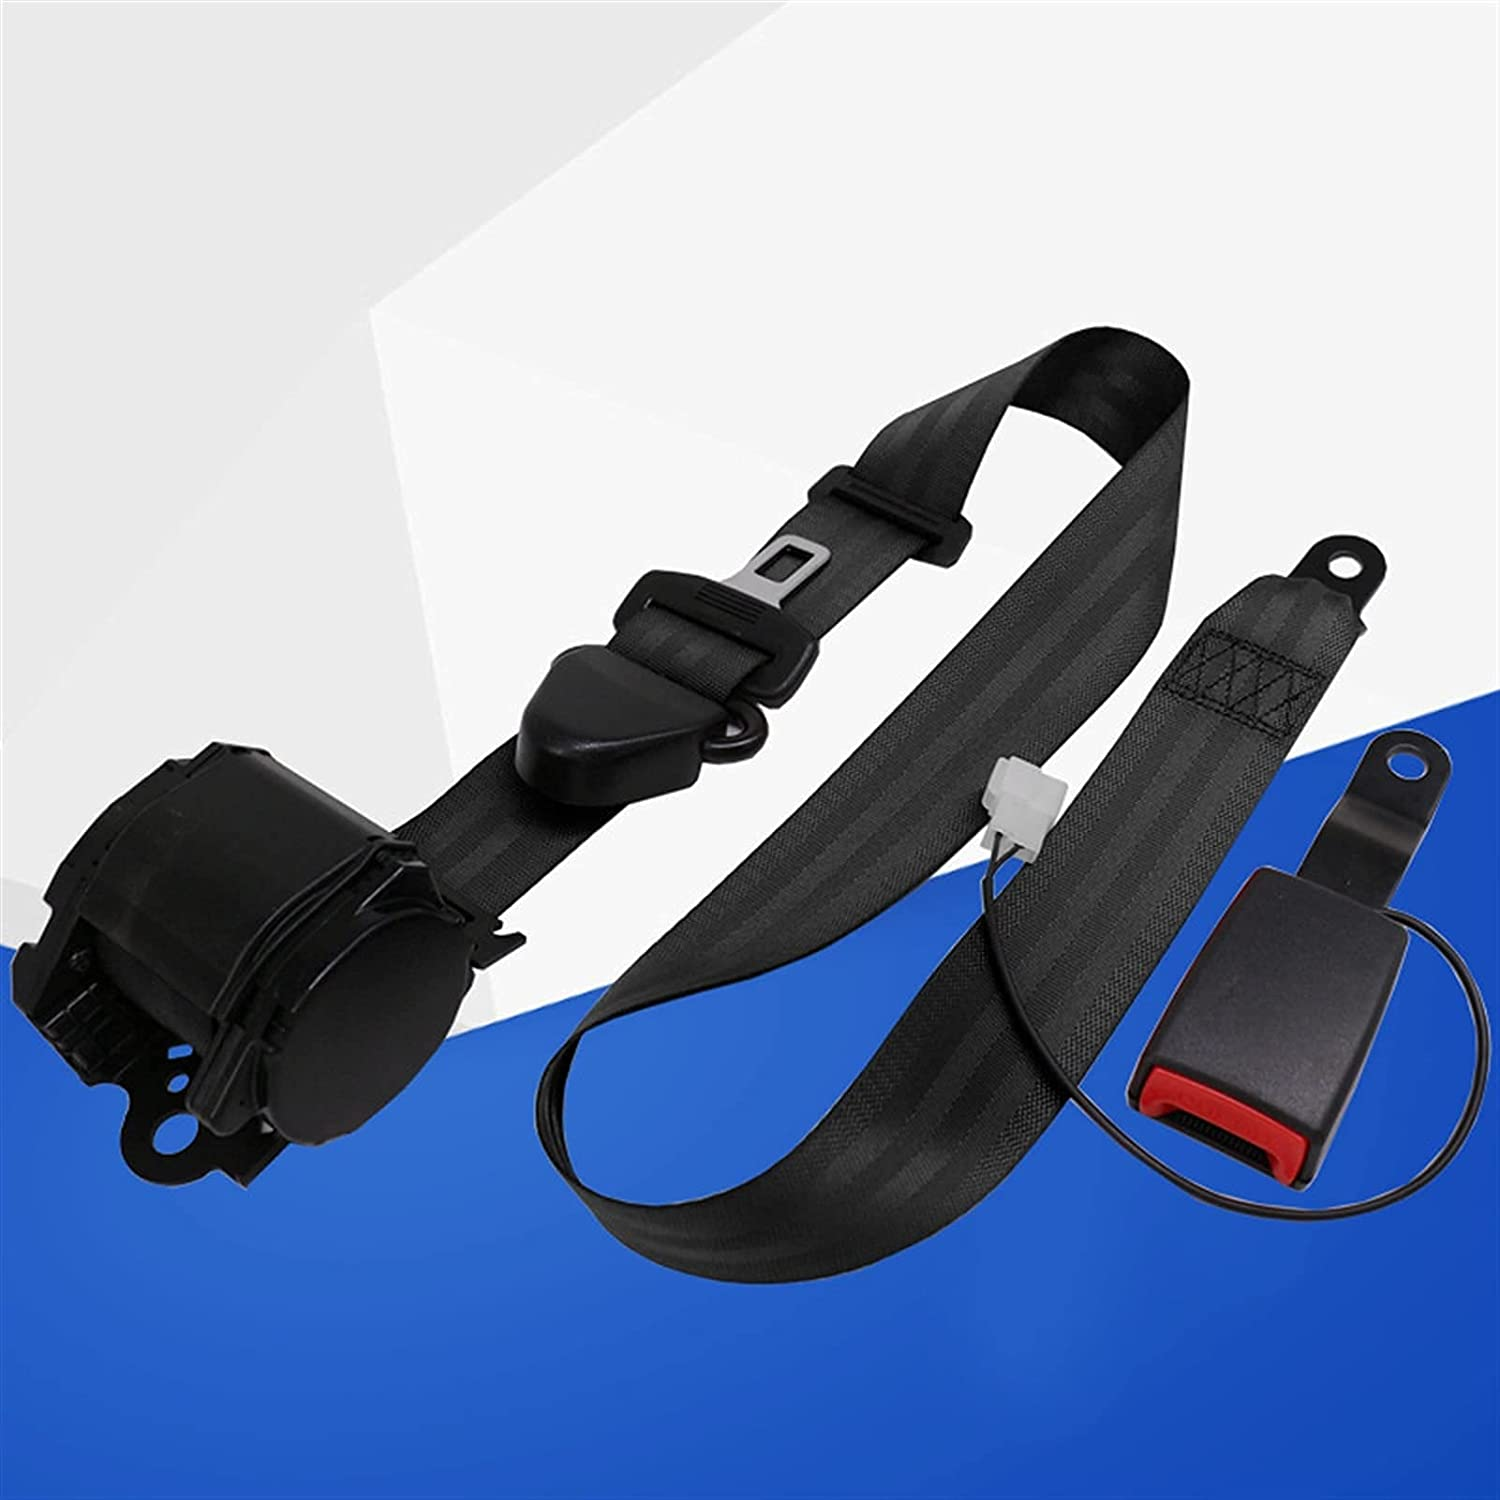 Finally resale start PARTAS Adjusters Lap Safety Limited time for free shipping Belt Buc Curved with Seatbelts Rigid